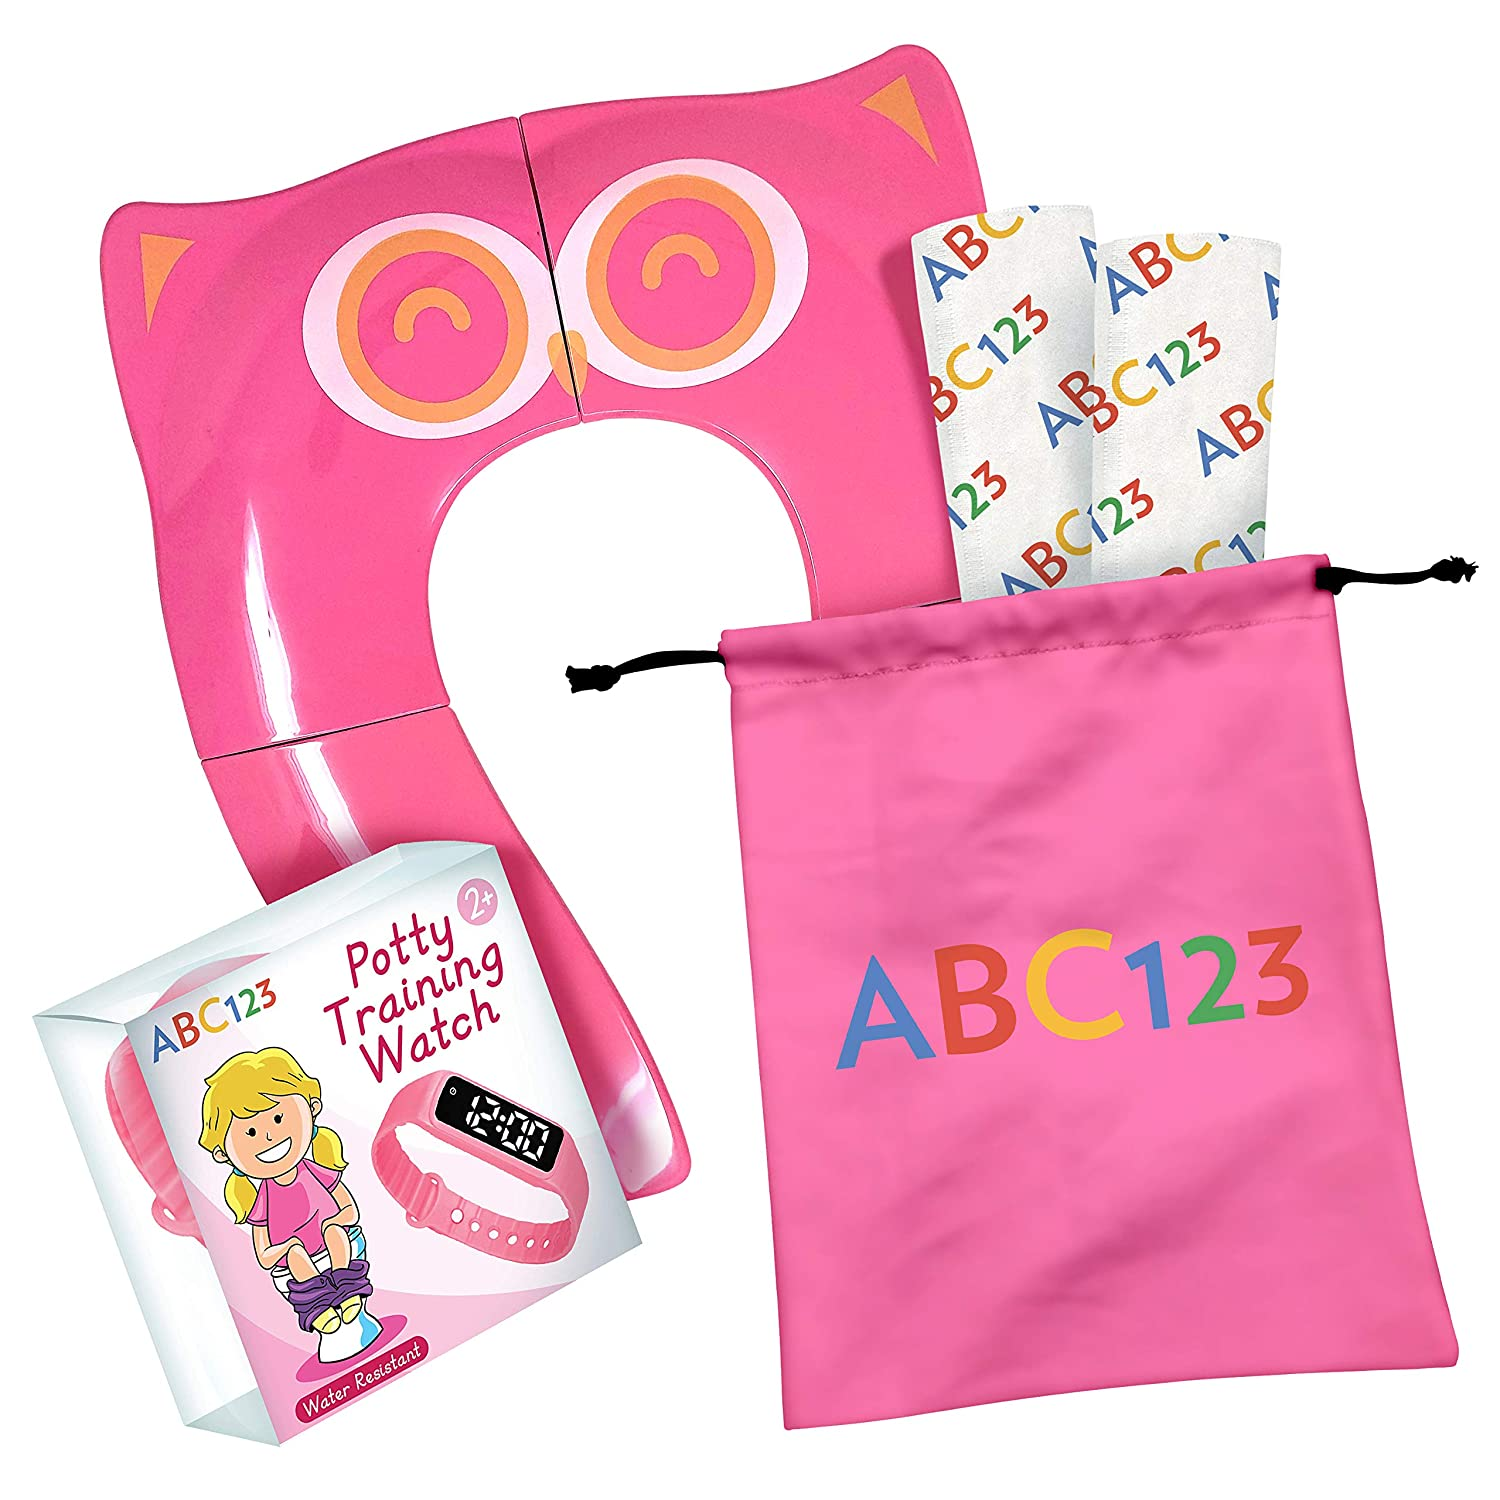 ABC123 - Toddler Potty Training Set - Portable Toilet Seat Cover, Potty Training Watch and 2 Disposable Shields (Pink)